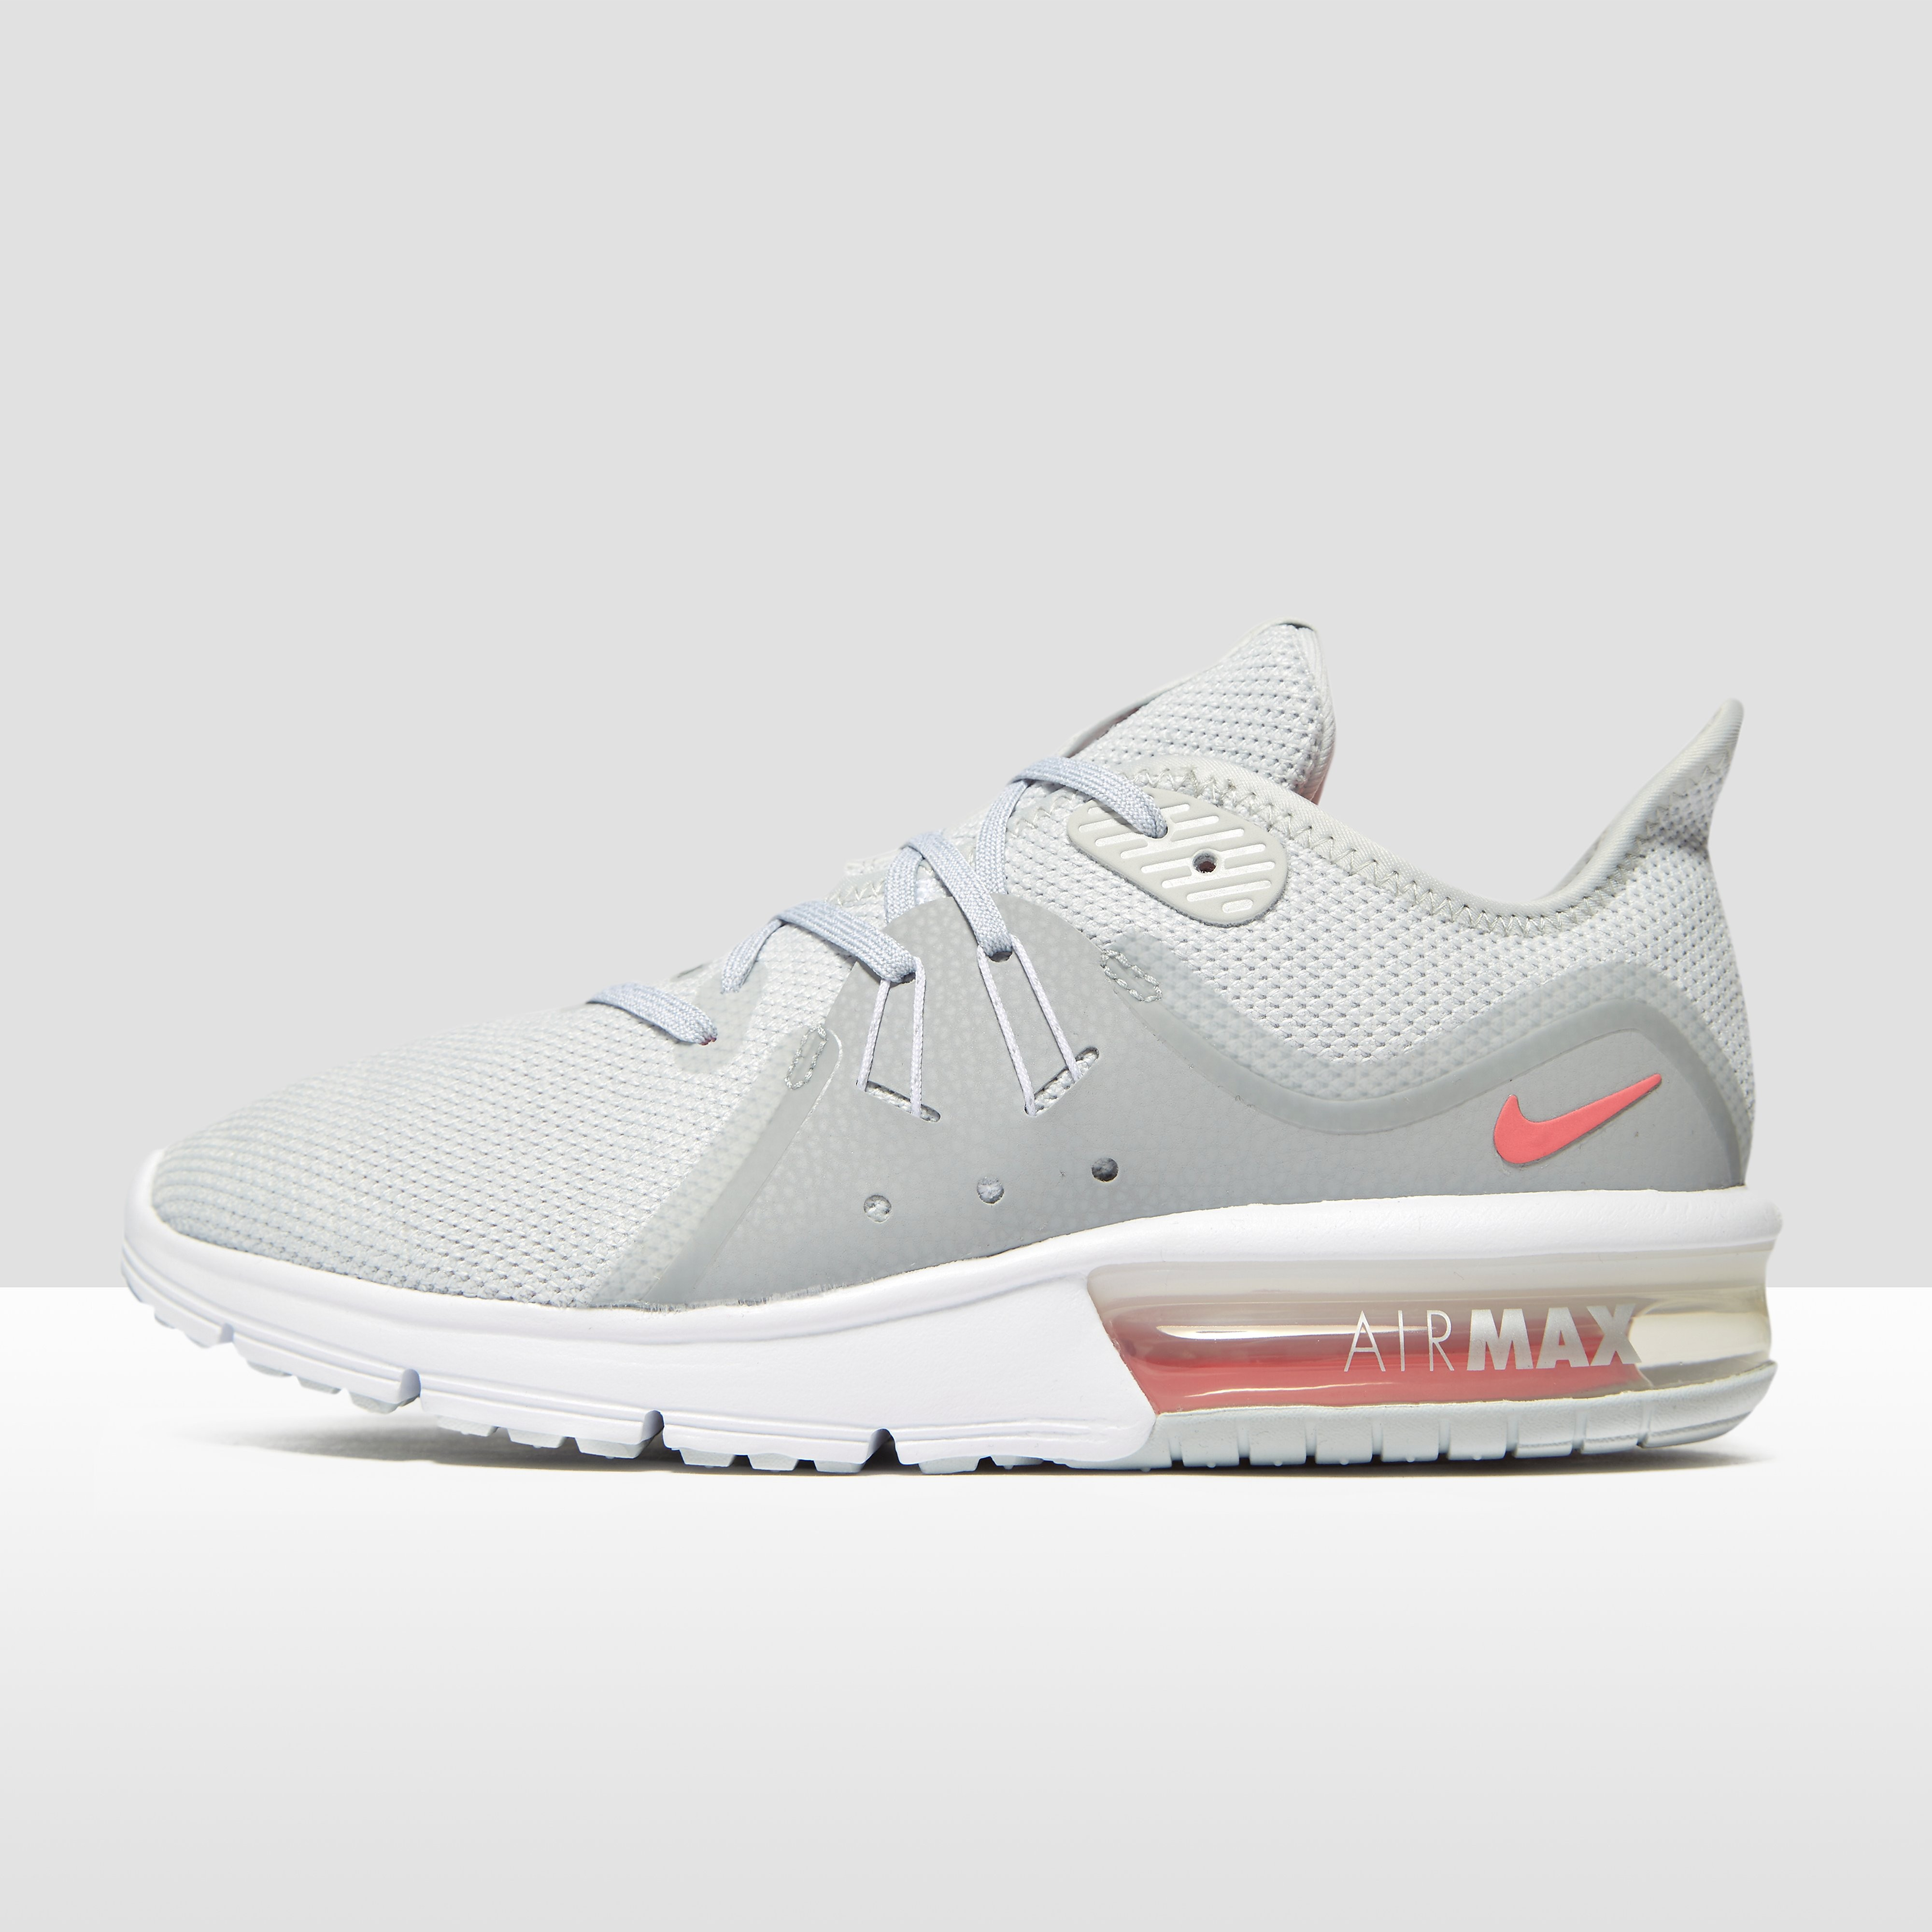 Nike Air Max Sequent 3 Women's Running Shoes